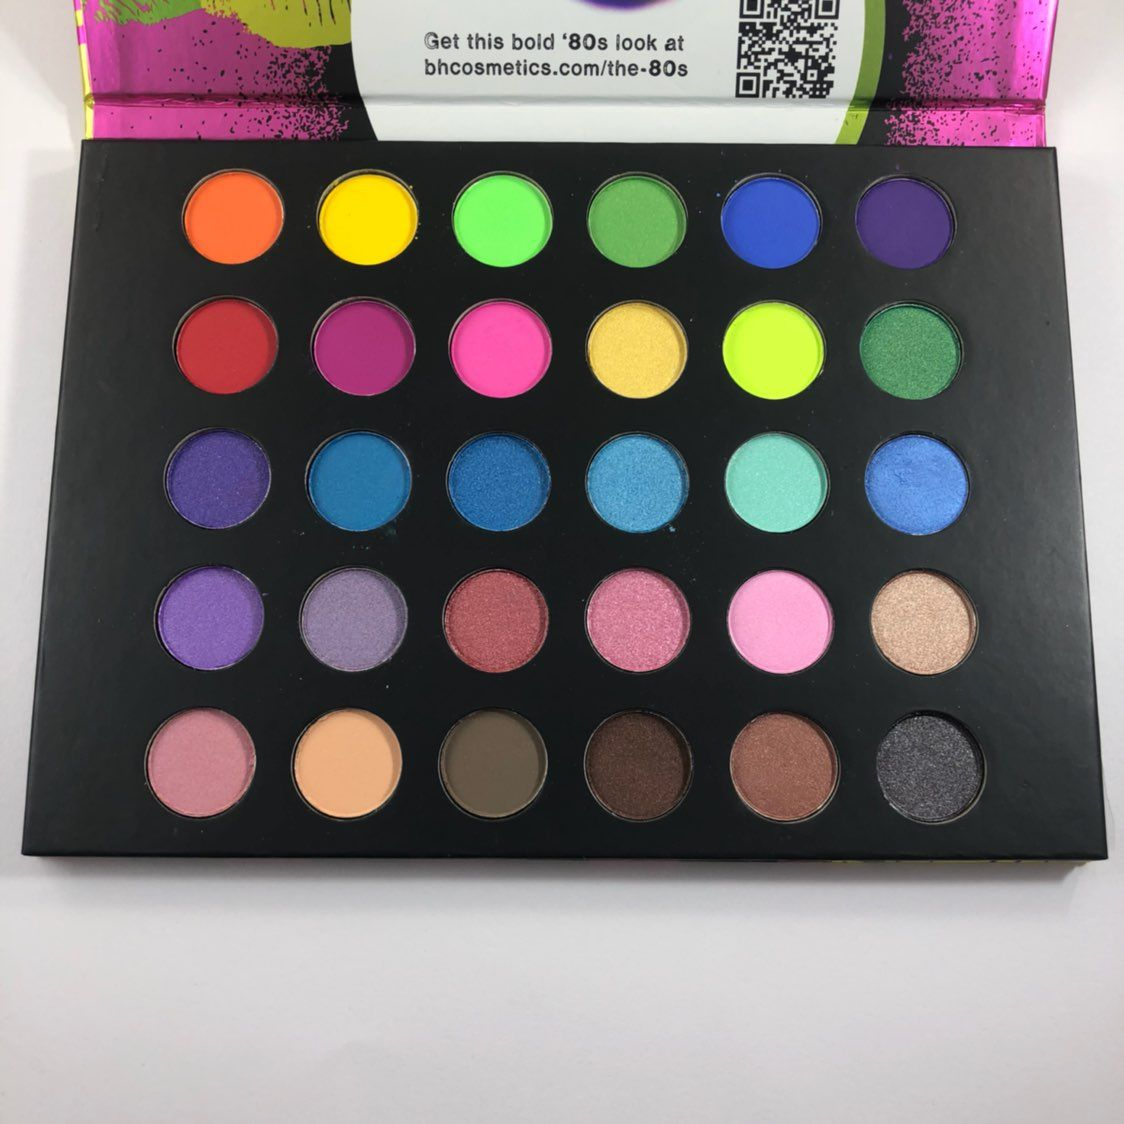 Bh Cosmetics Eyes on the 80s  Palette